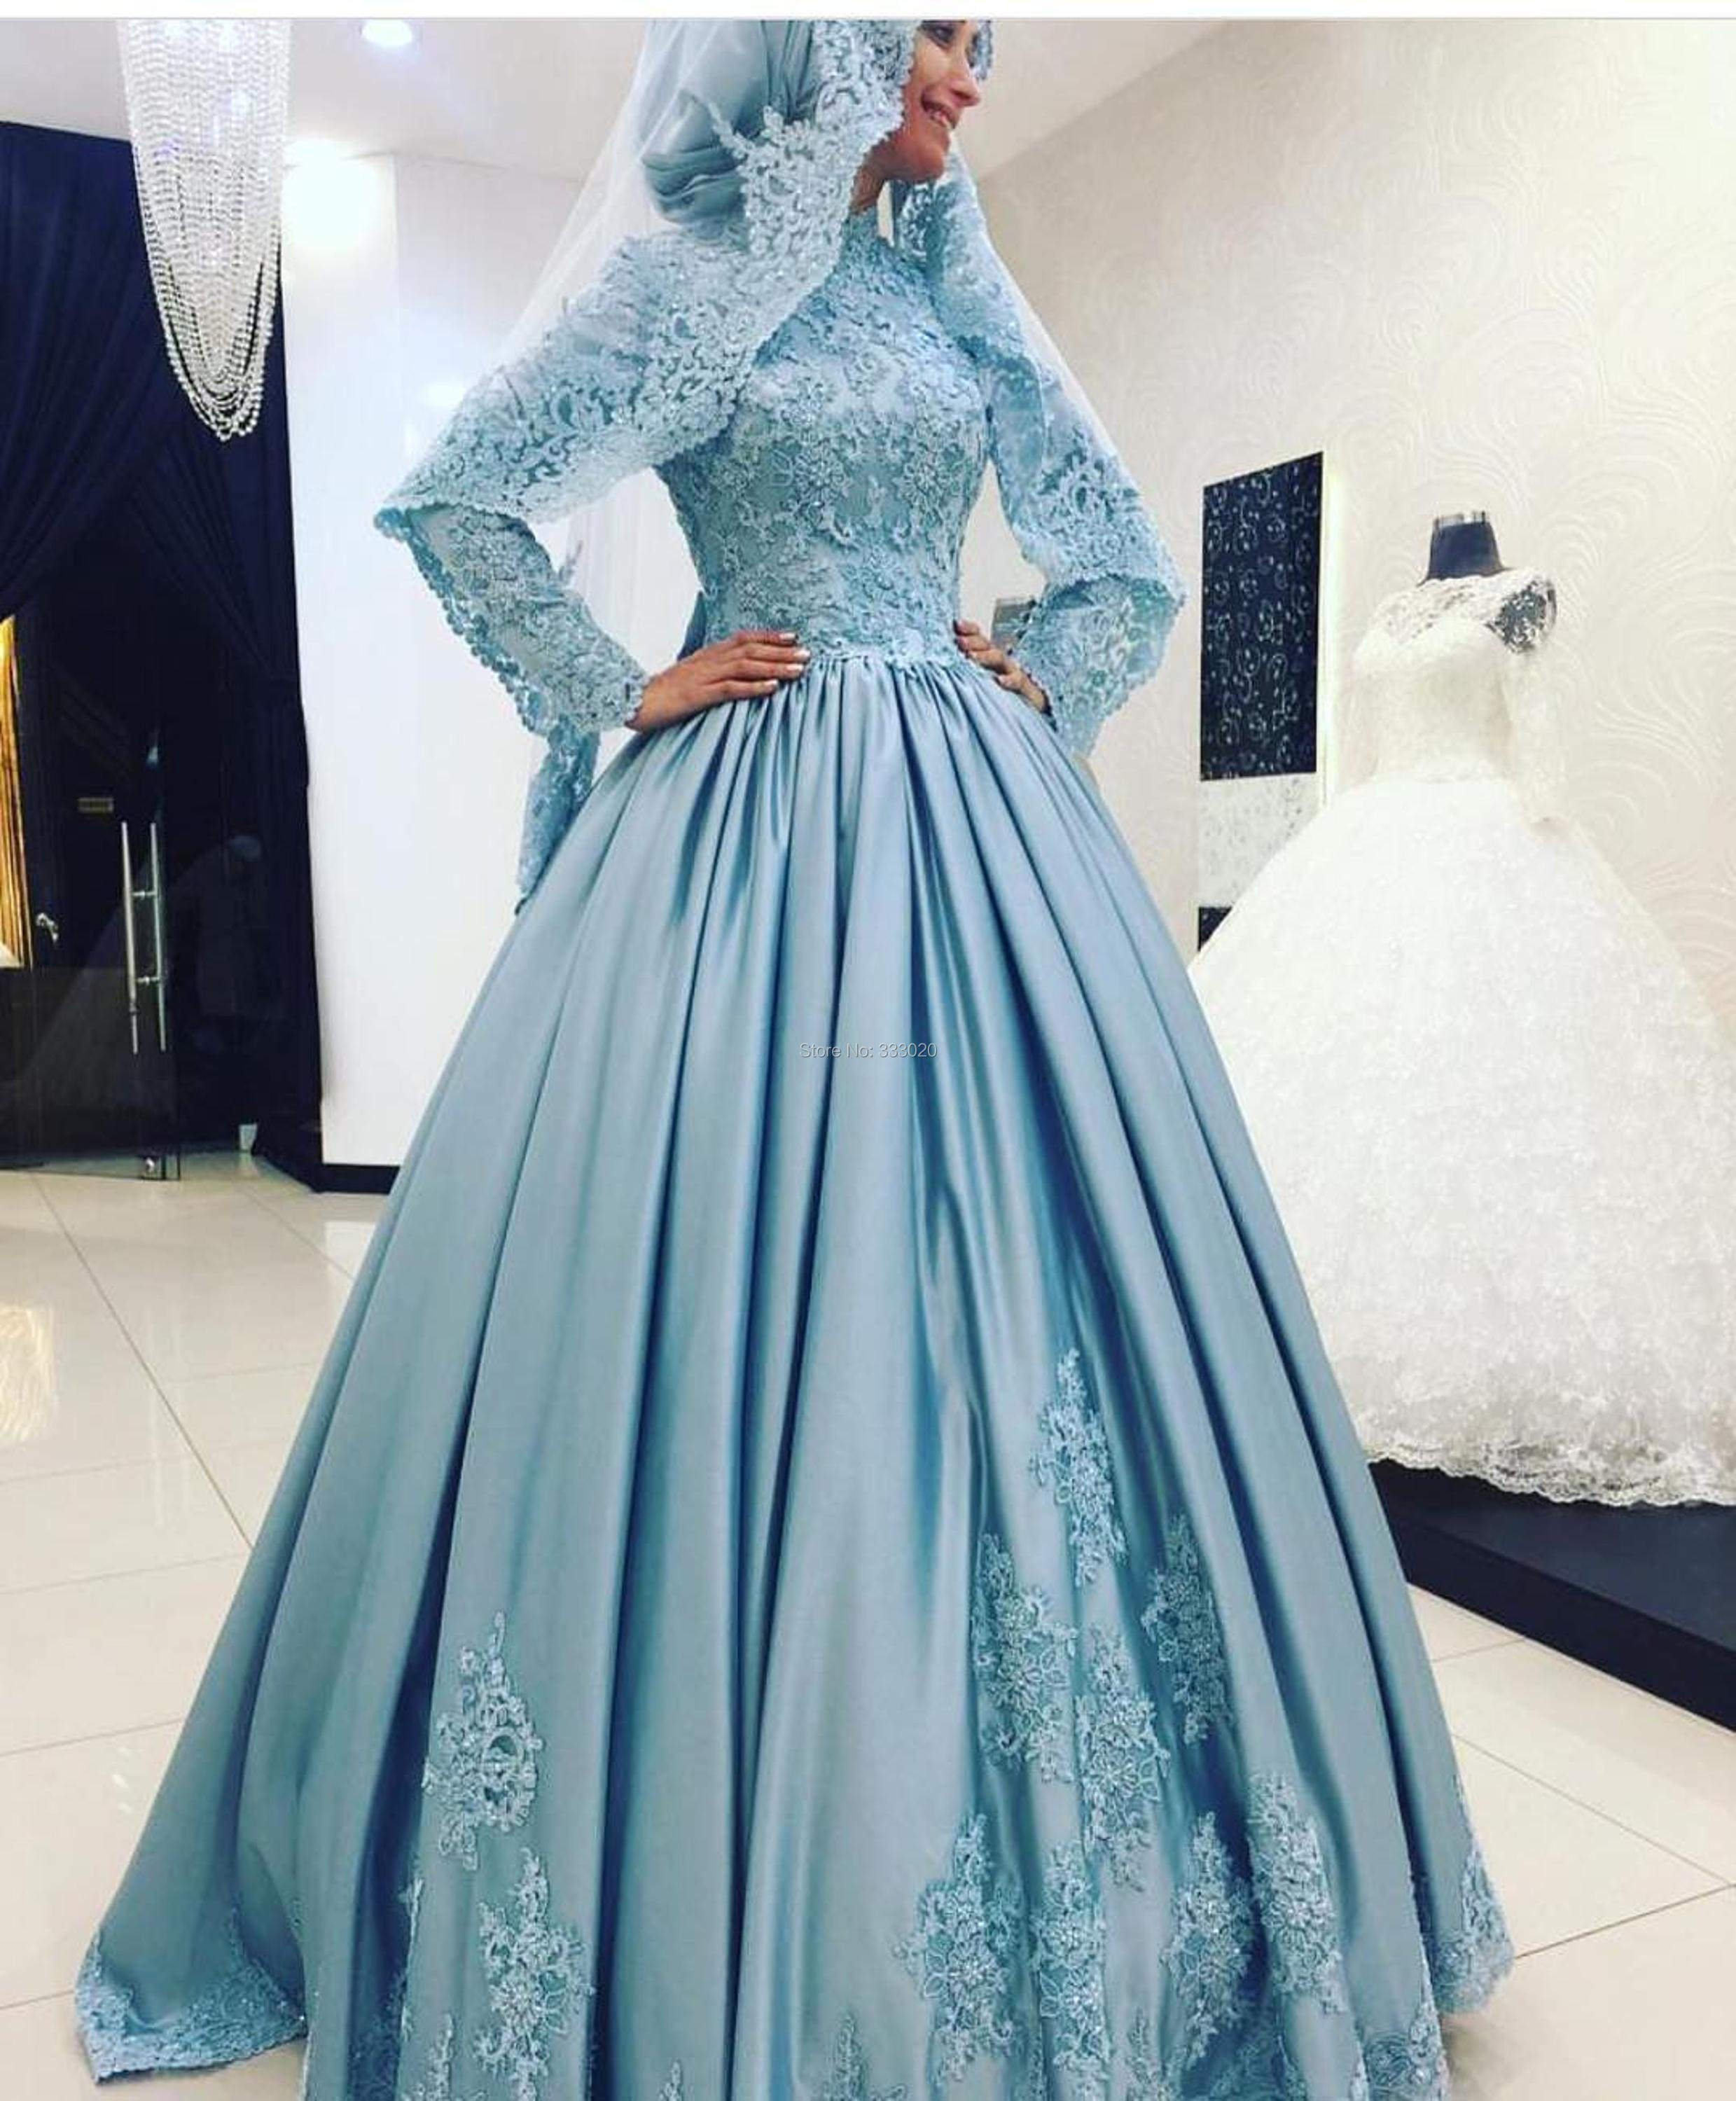 High Neck Long Sleeves Satin font b Hijab b font Muslim Evening Dress with Lace Appliques